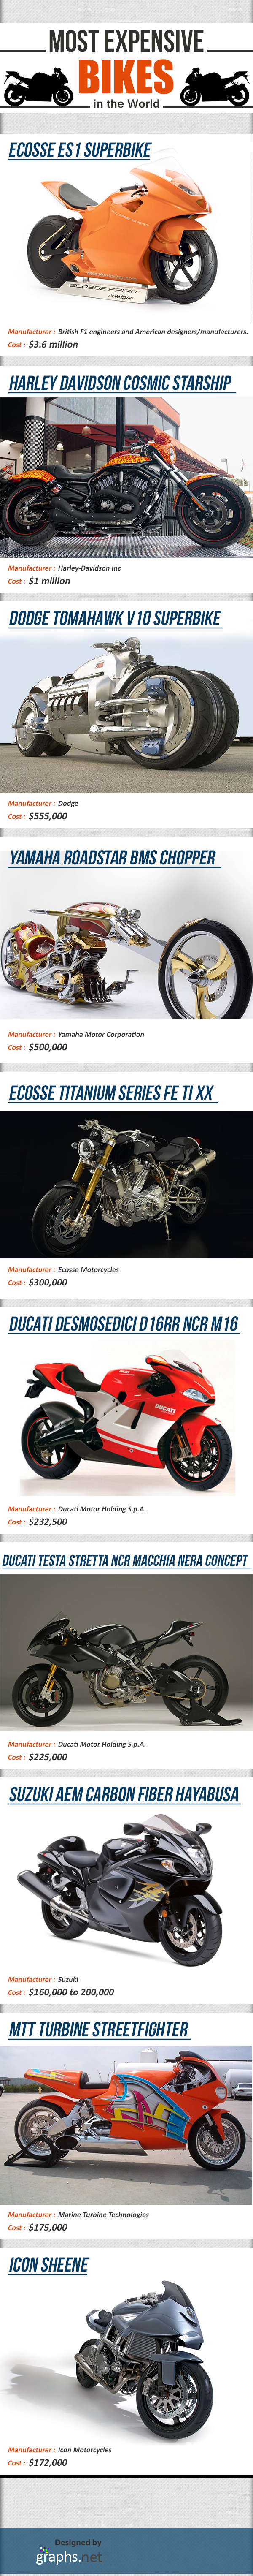 Most Expensive Bikes in the World